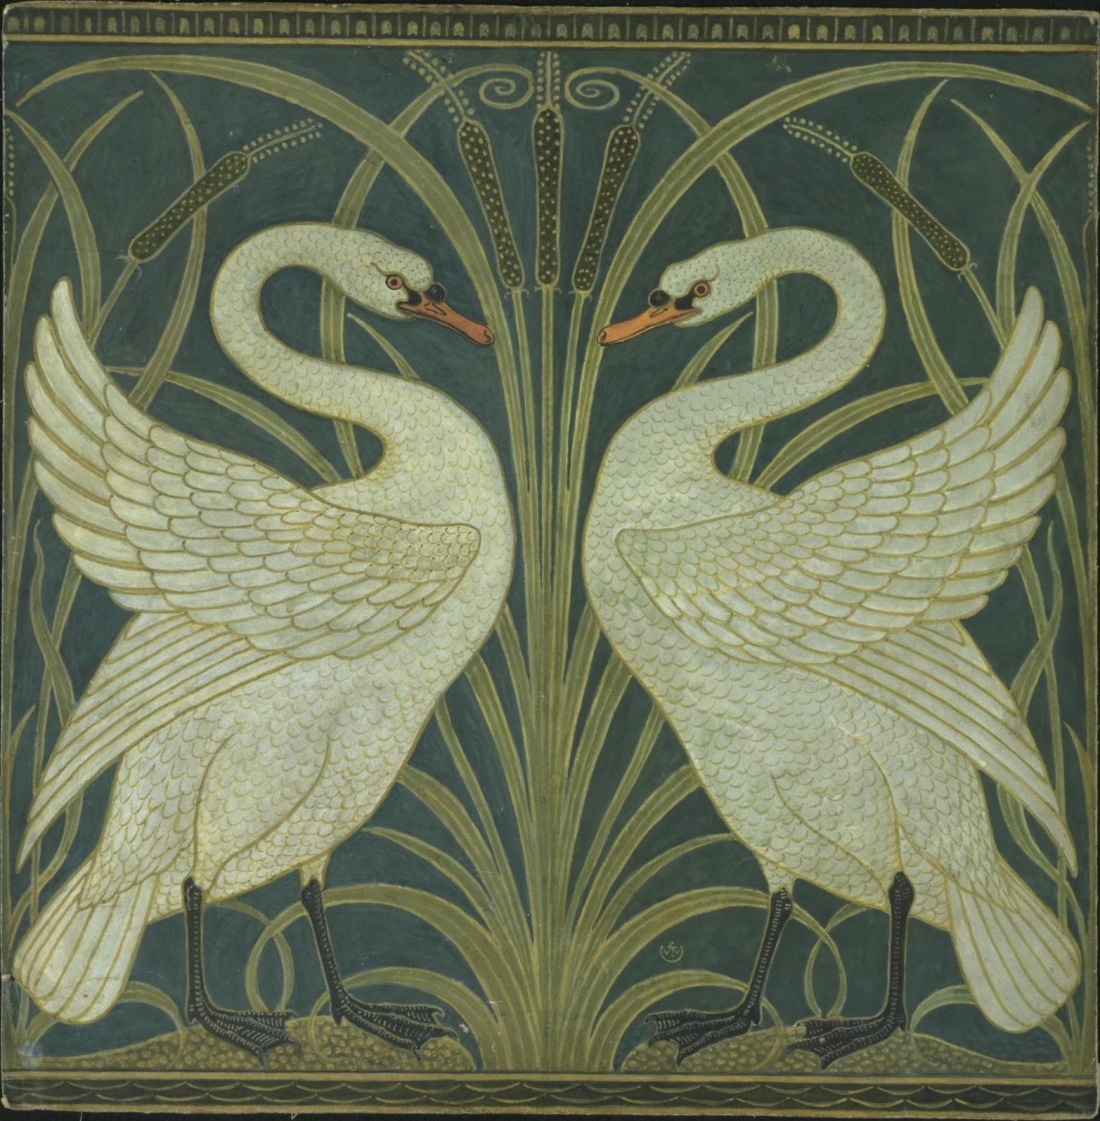 Swan and Rush and Iris wallpaper. 1875.